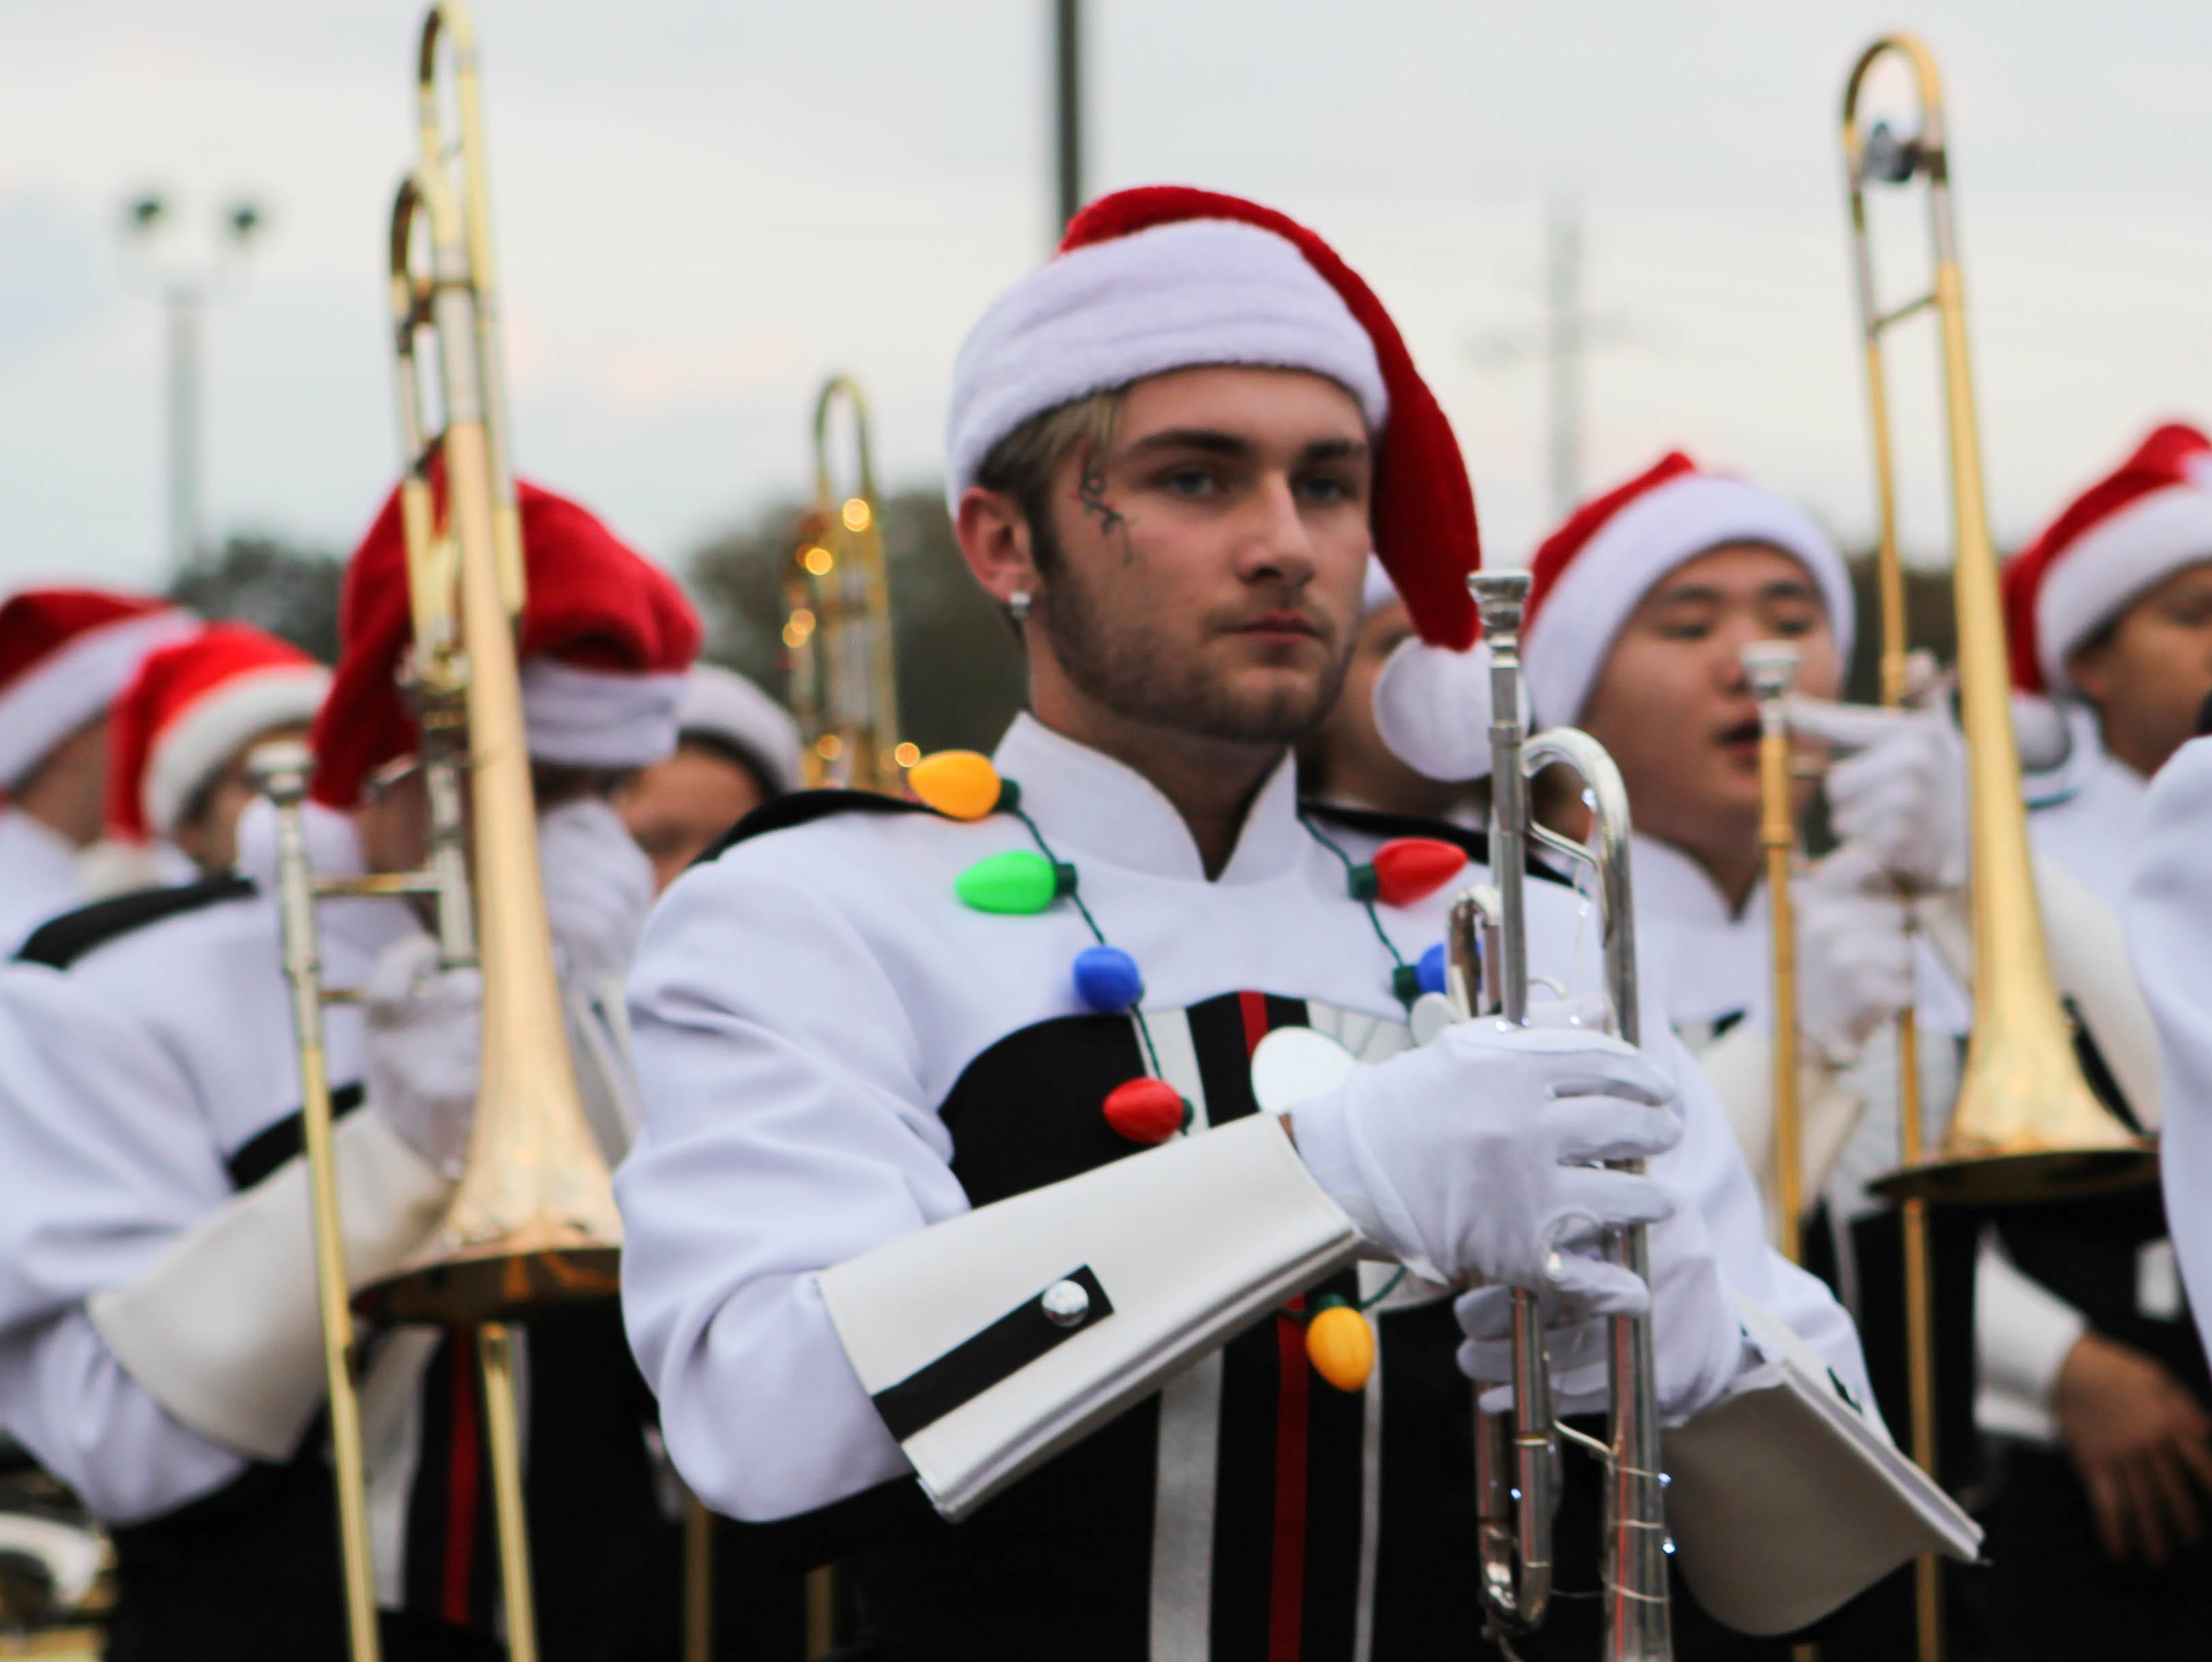 A trumpet player of the Petal High School Marching Band marches in the Petal Christmas Parade on Saturday, December 1, 2018.